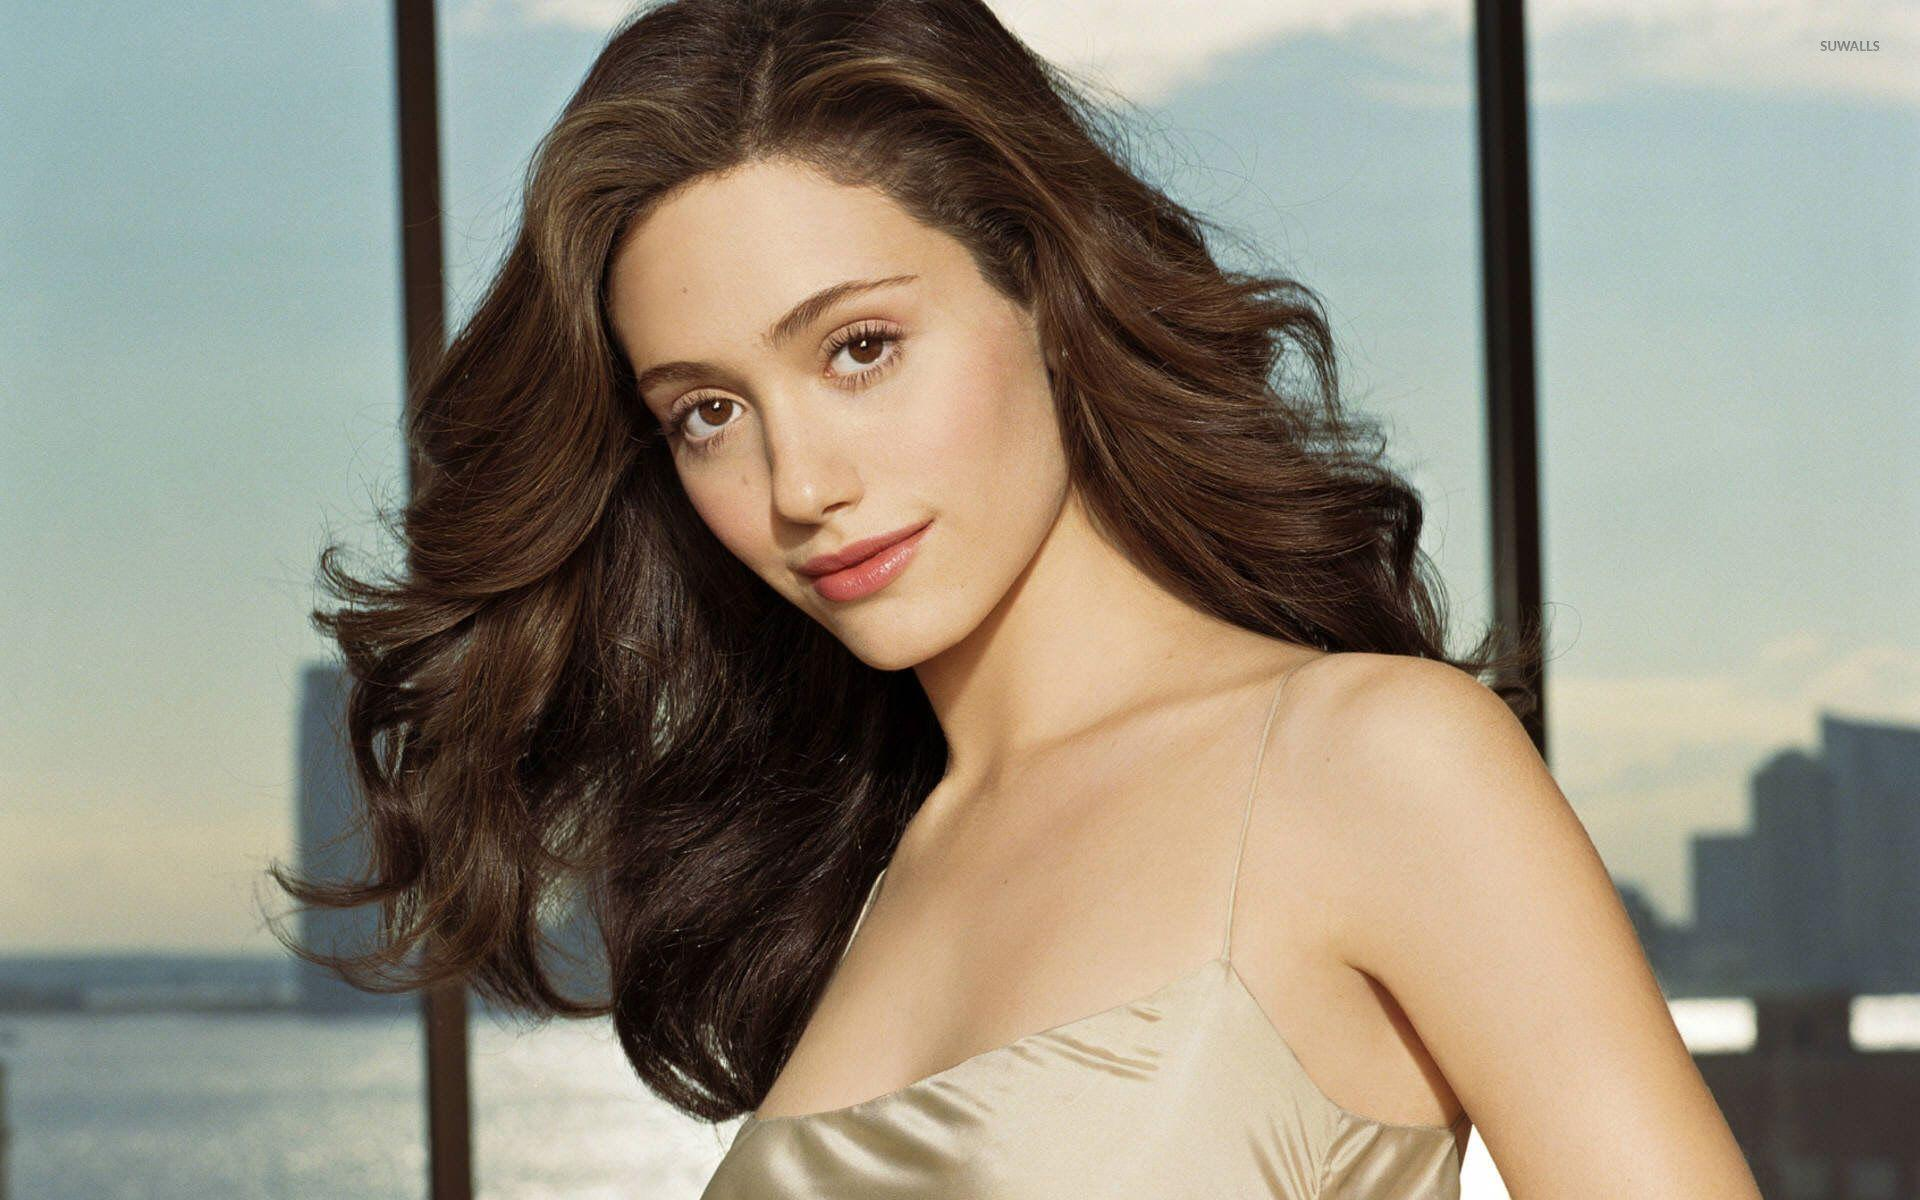 Emmy Rossum Wallpapers - Wallpaper Cave Emmy Rossum Wallpaper